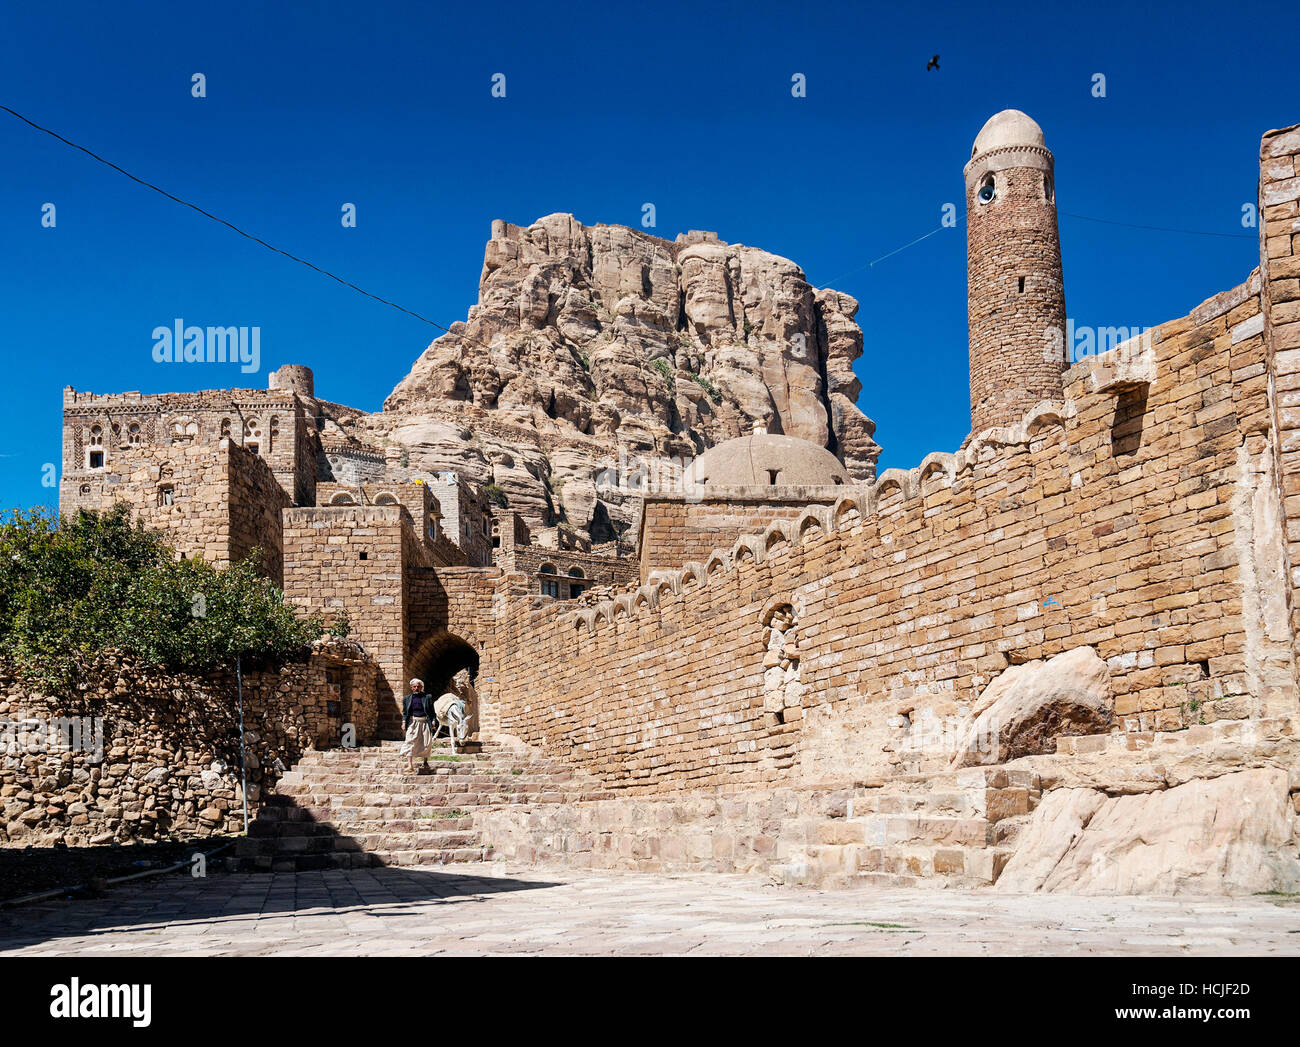 street in traditional old yemeni heritage shibam village near sanaa yemen - Stock Image